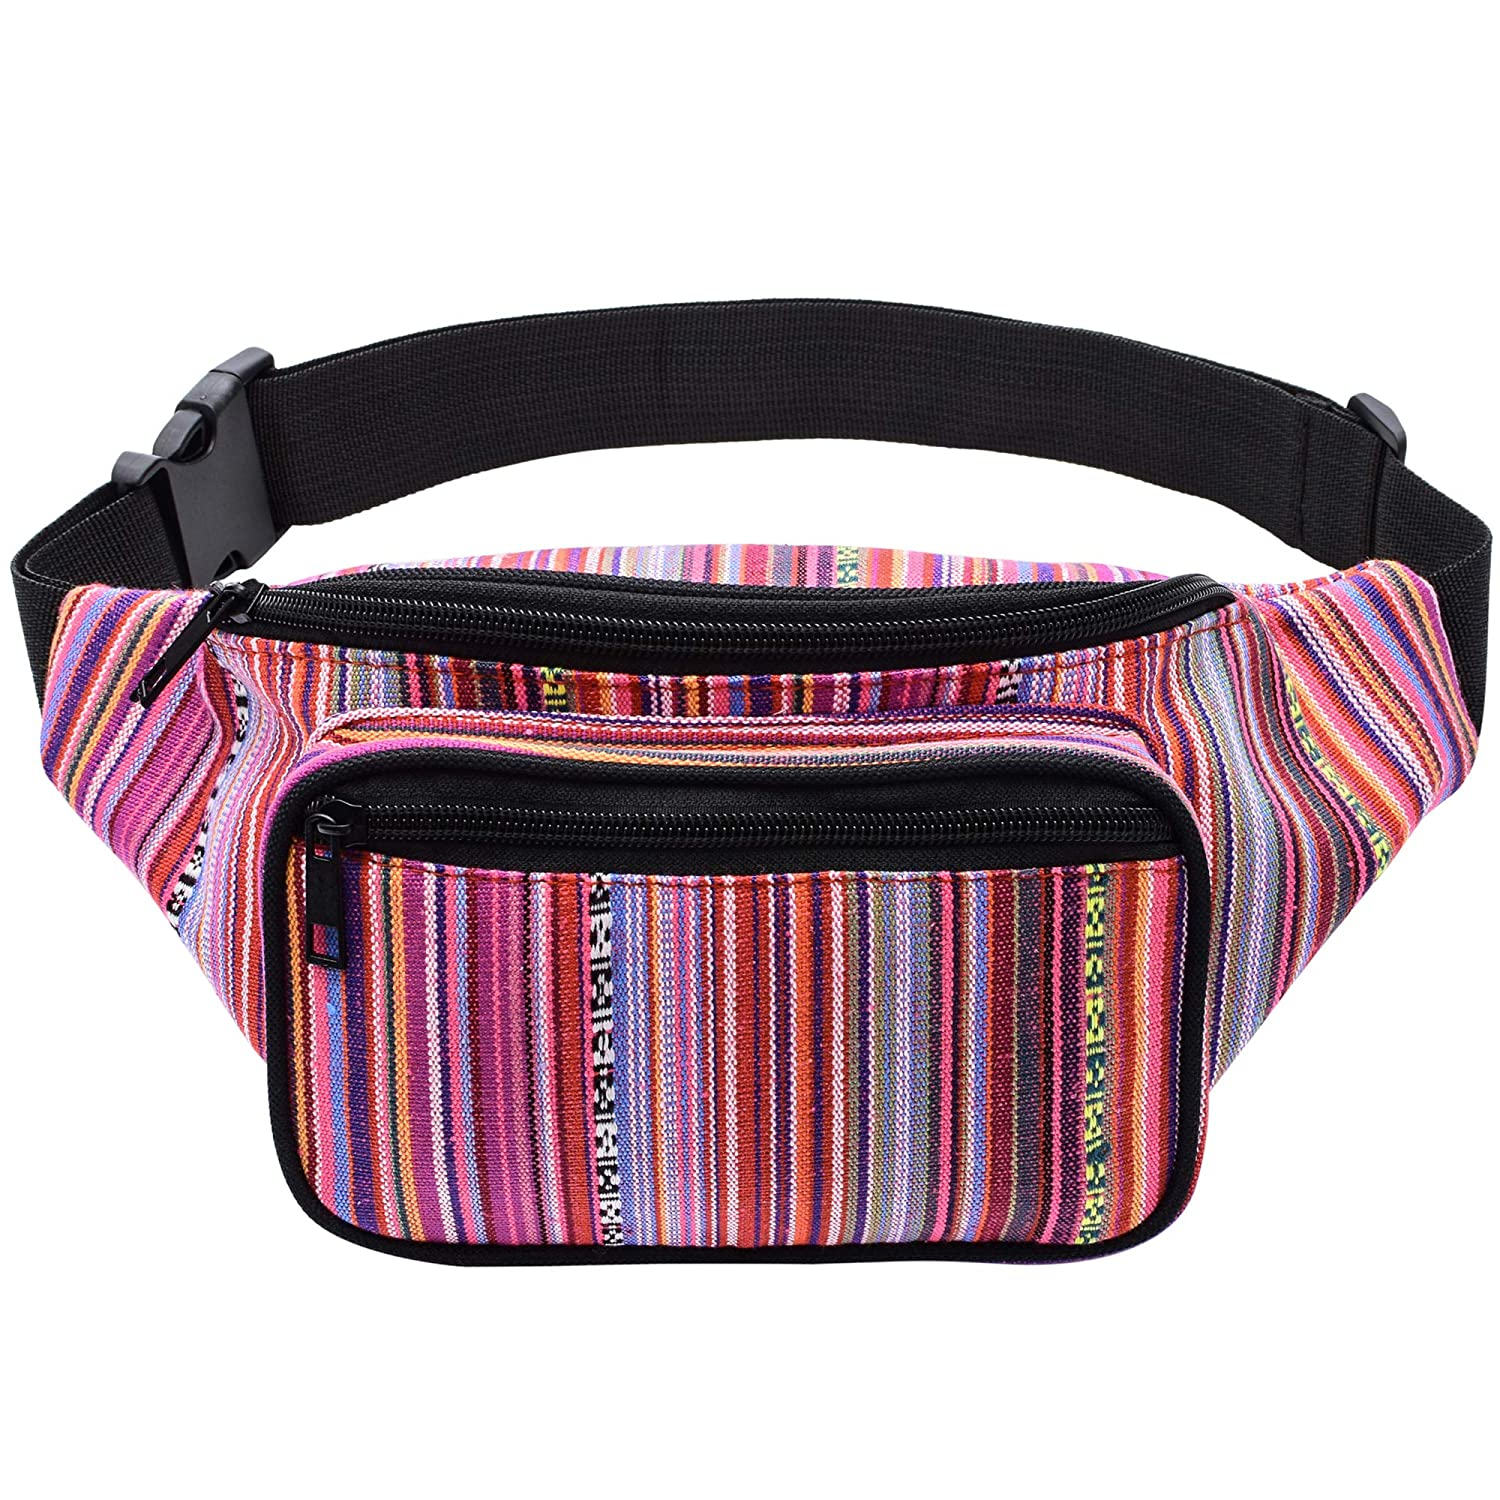 Kayhoma Boho Fanny Pack Stripe Festival Rave Bum Bags Travel Hiking Hip Waist Belt Purse yb008-2